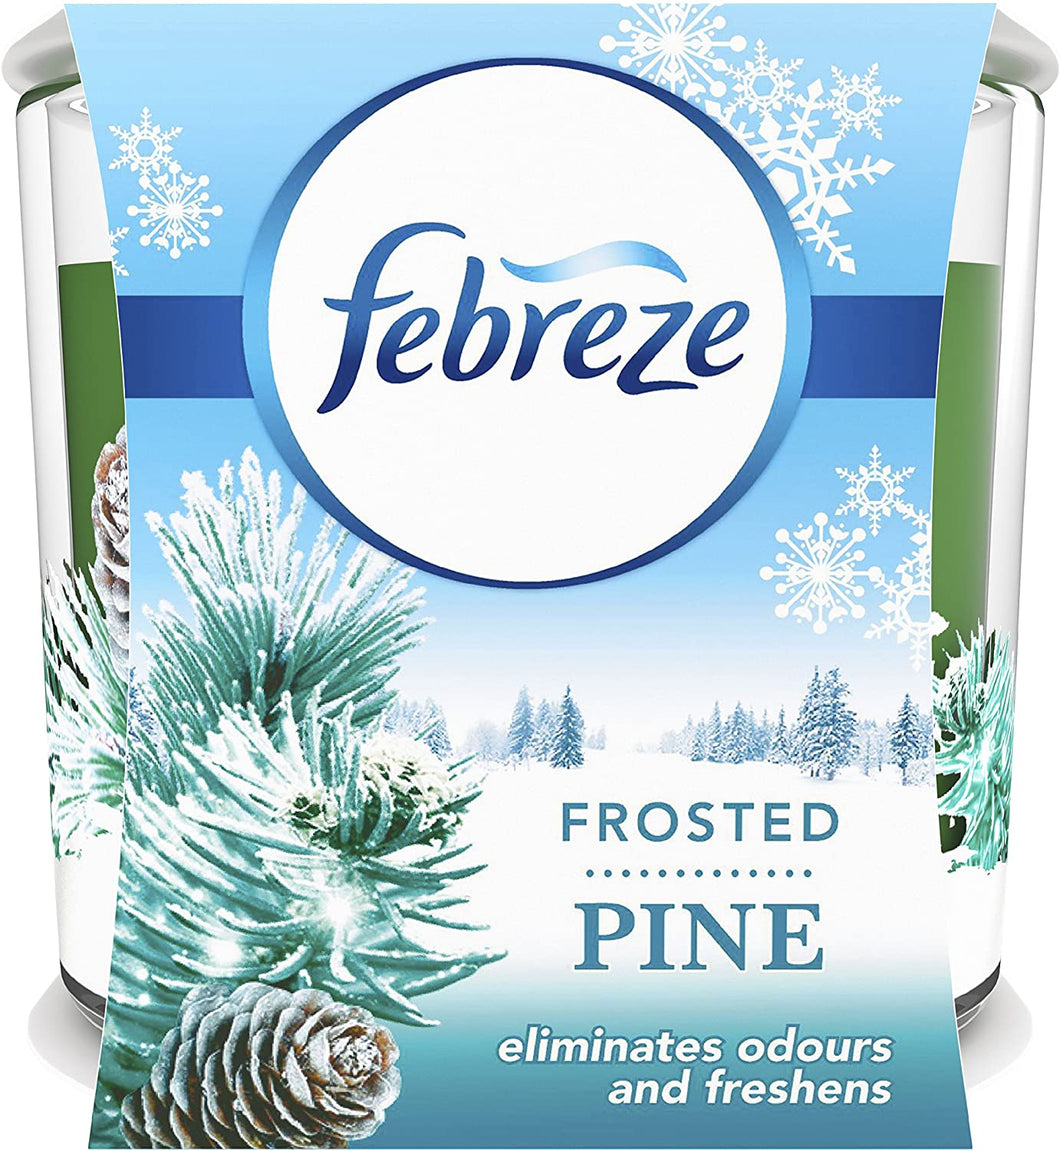 Febreze Candle Air Freshener - Frosted Pine (100g)